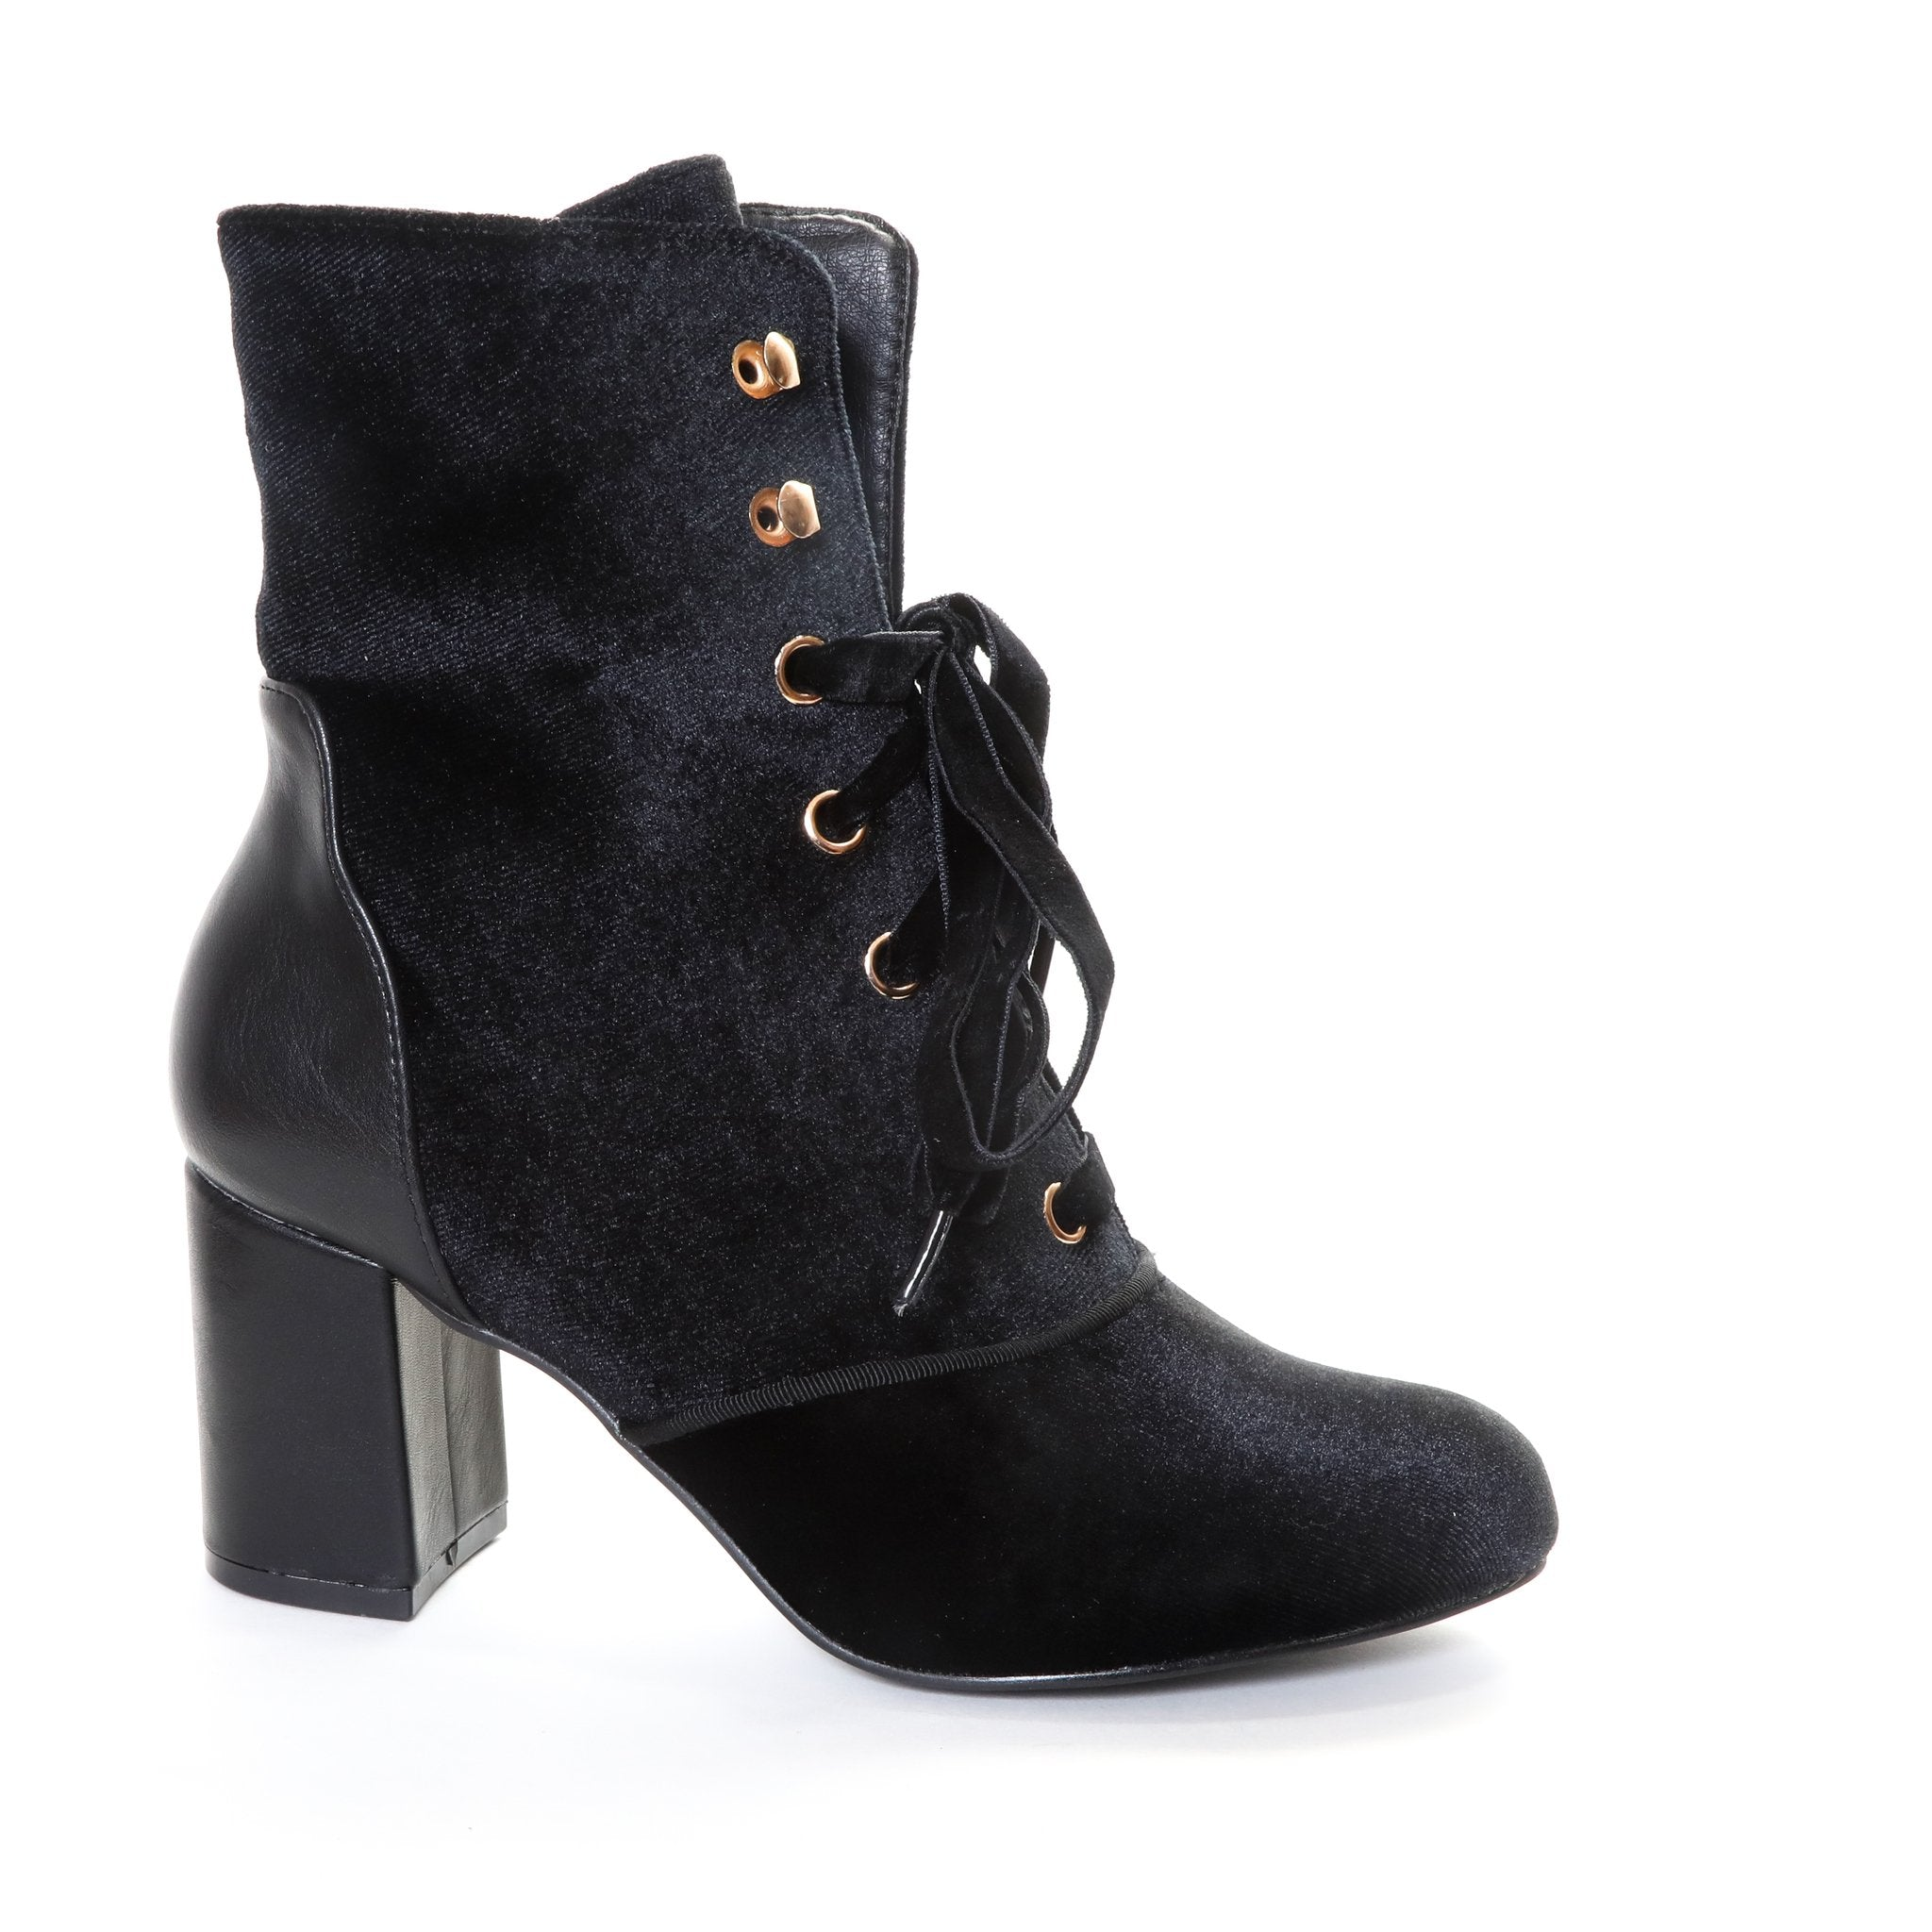 Claudia by Dolce Nome | Lace Up Heel Boots in Black (side view)